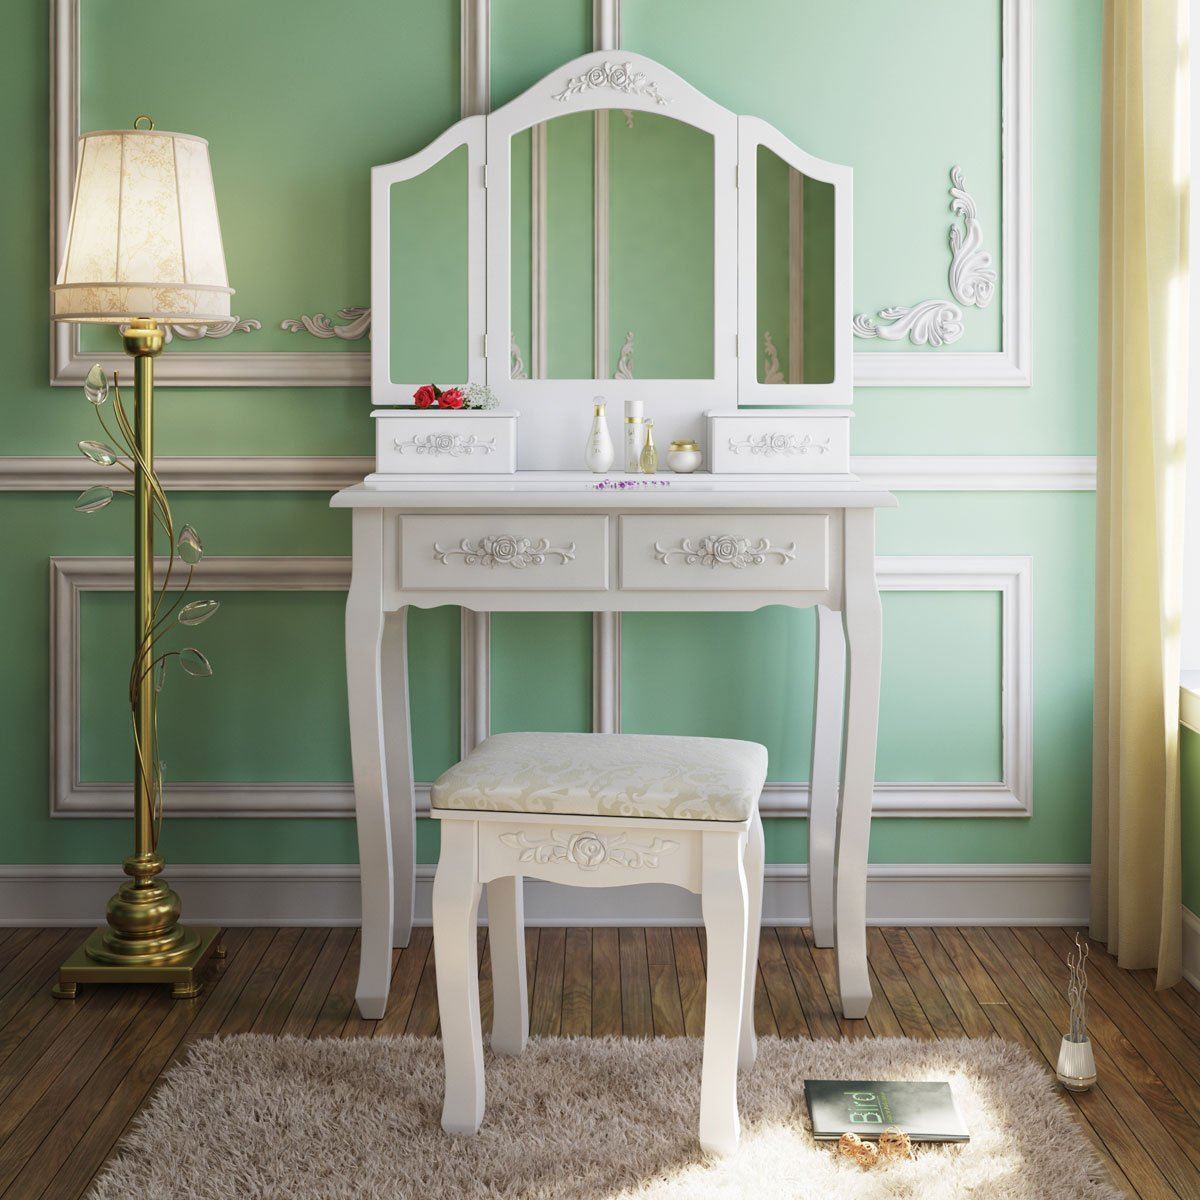 large ideas lights furniture and top around makeup mirror dressing modern color painted vanity with storage mirrored glass drawer white plus table